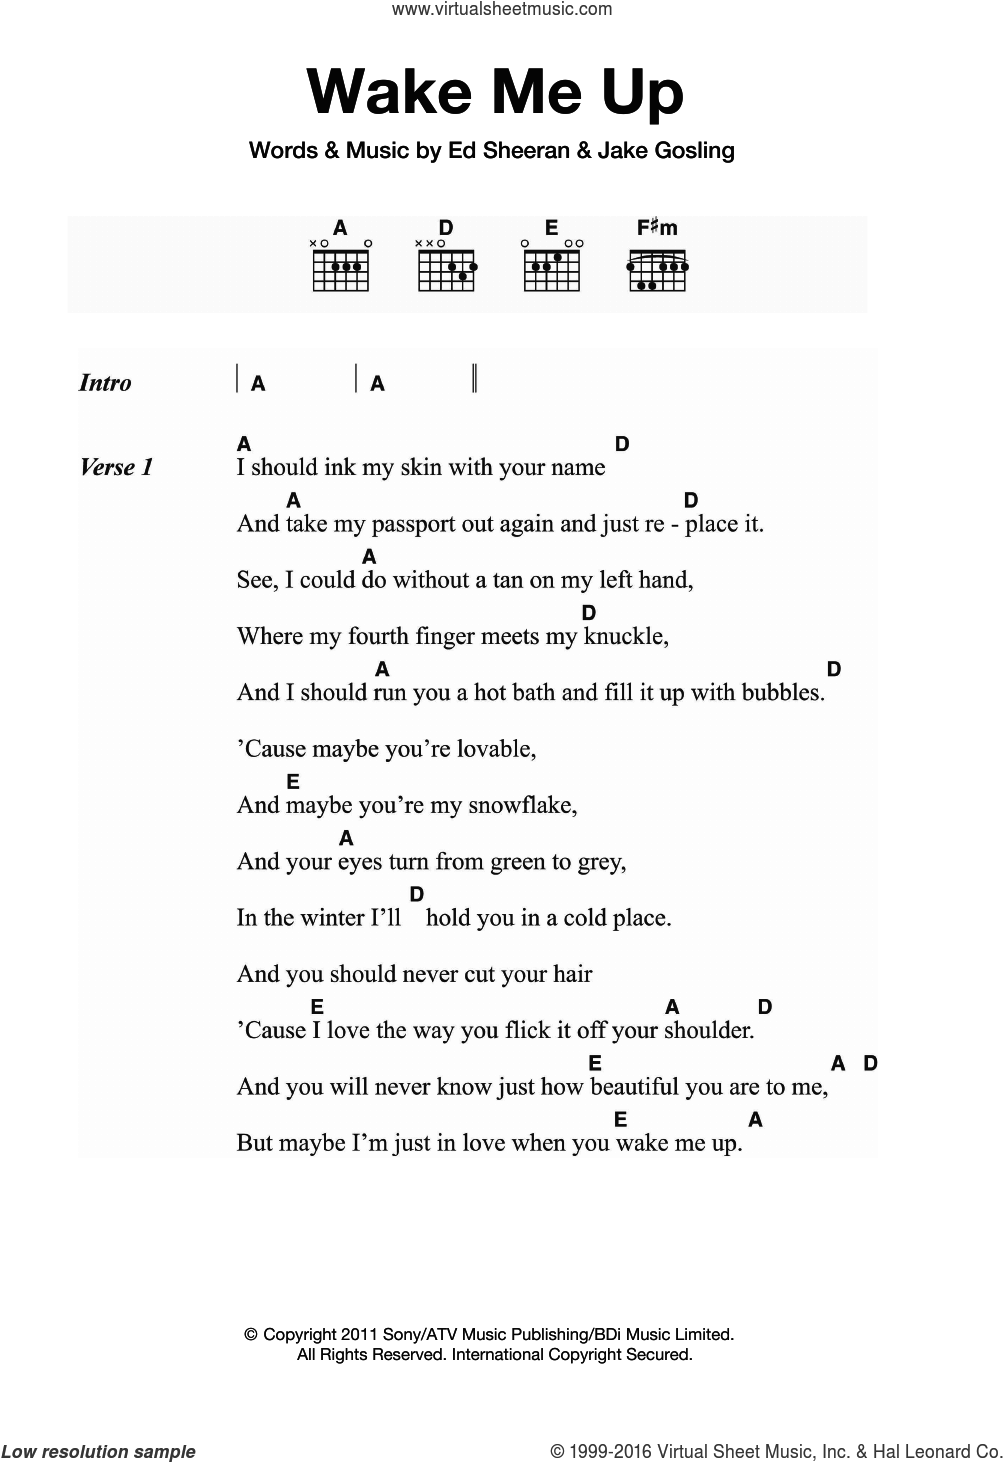 Wake Me Up sheet music for guitar (chords) by Ed Sheeran and Jake Gosling, intermediate. Score Image Preview.